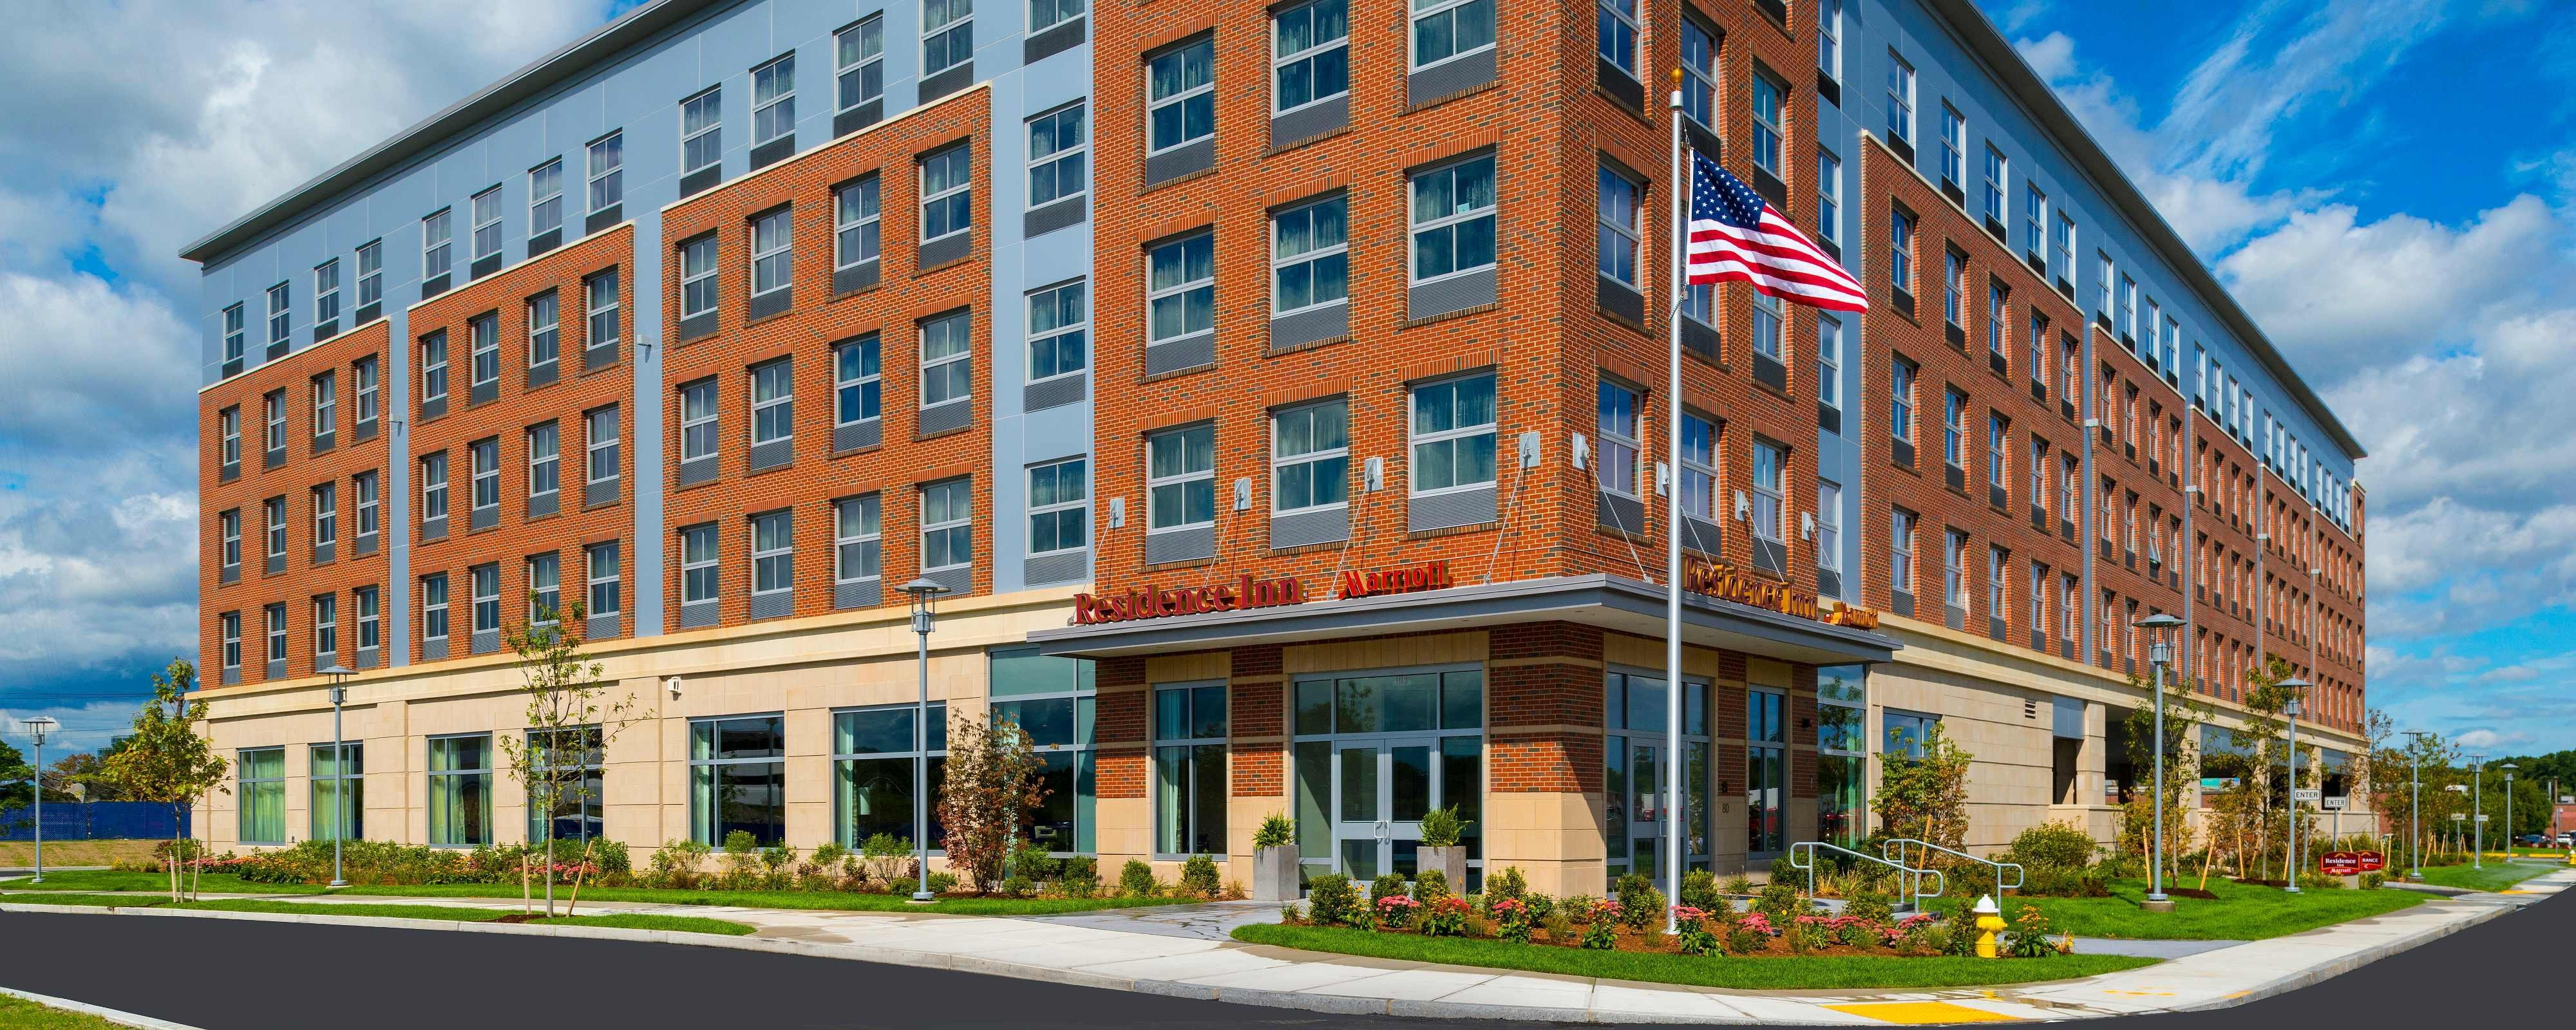 Extended Stay Boston Hotel